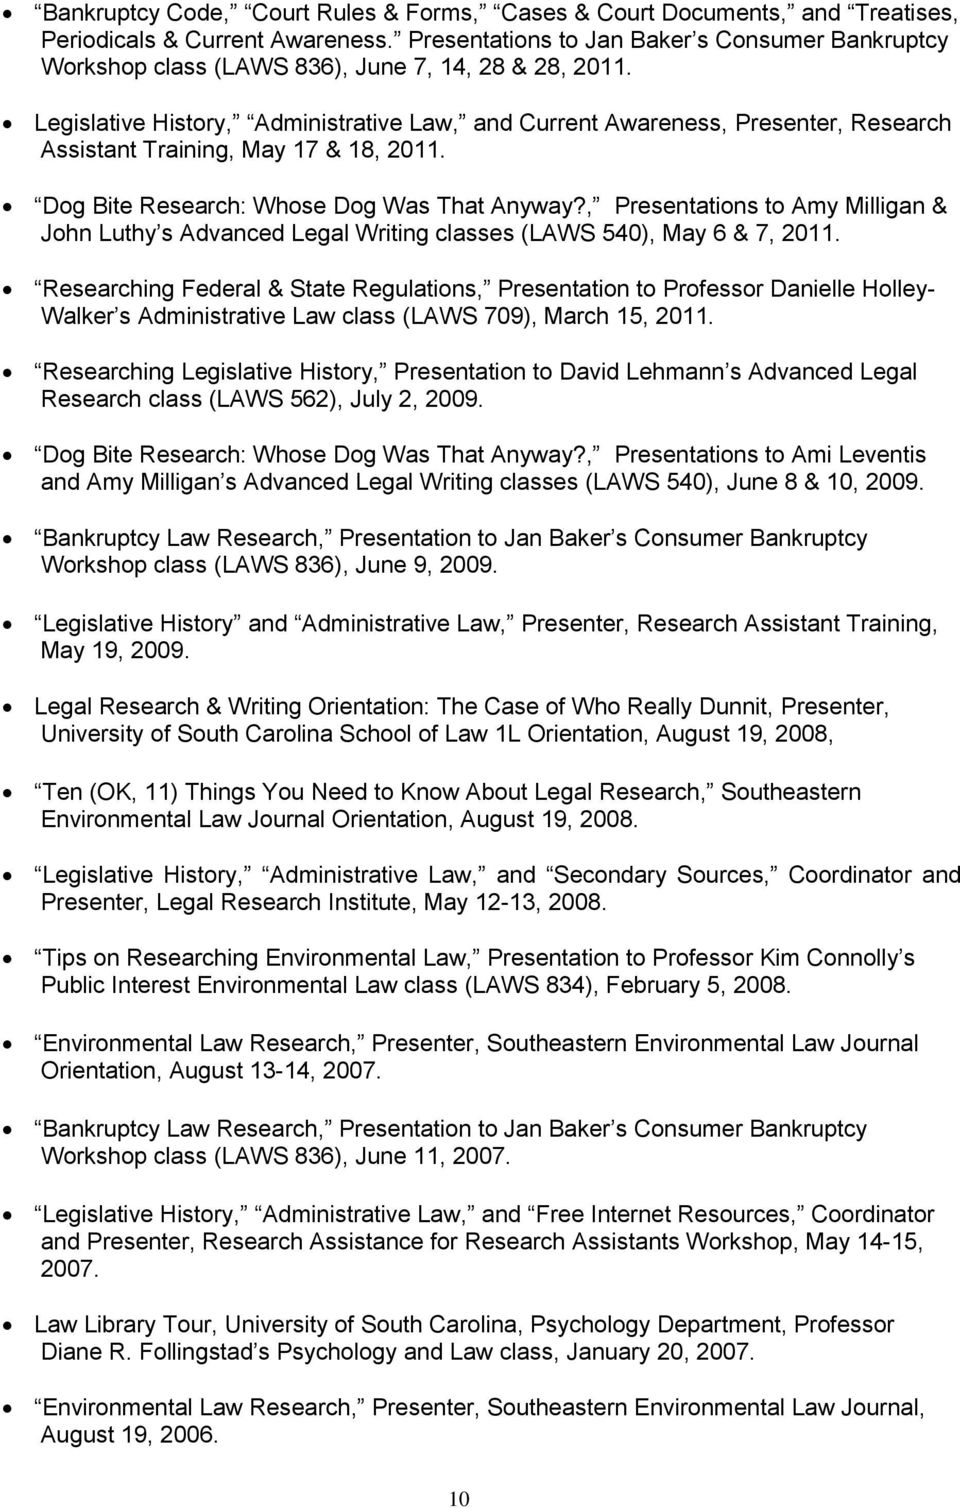 Legislative History, Administrative Law, and Current Awareness, Presenter, Research Assistant Training, May 17 & 18, 2011. Dog Bite Research: Whose Dog Was That Anyway?